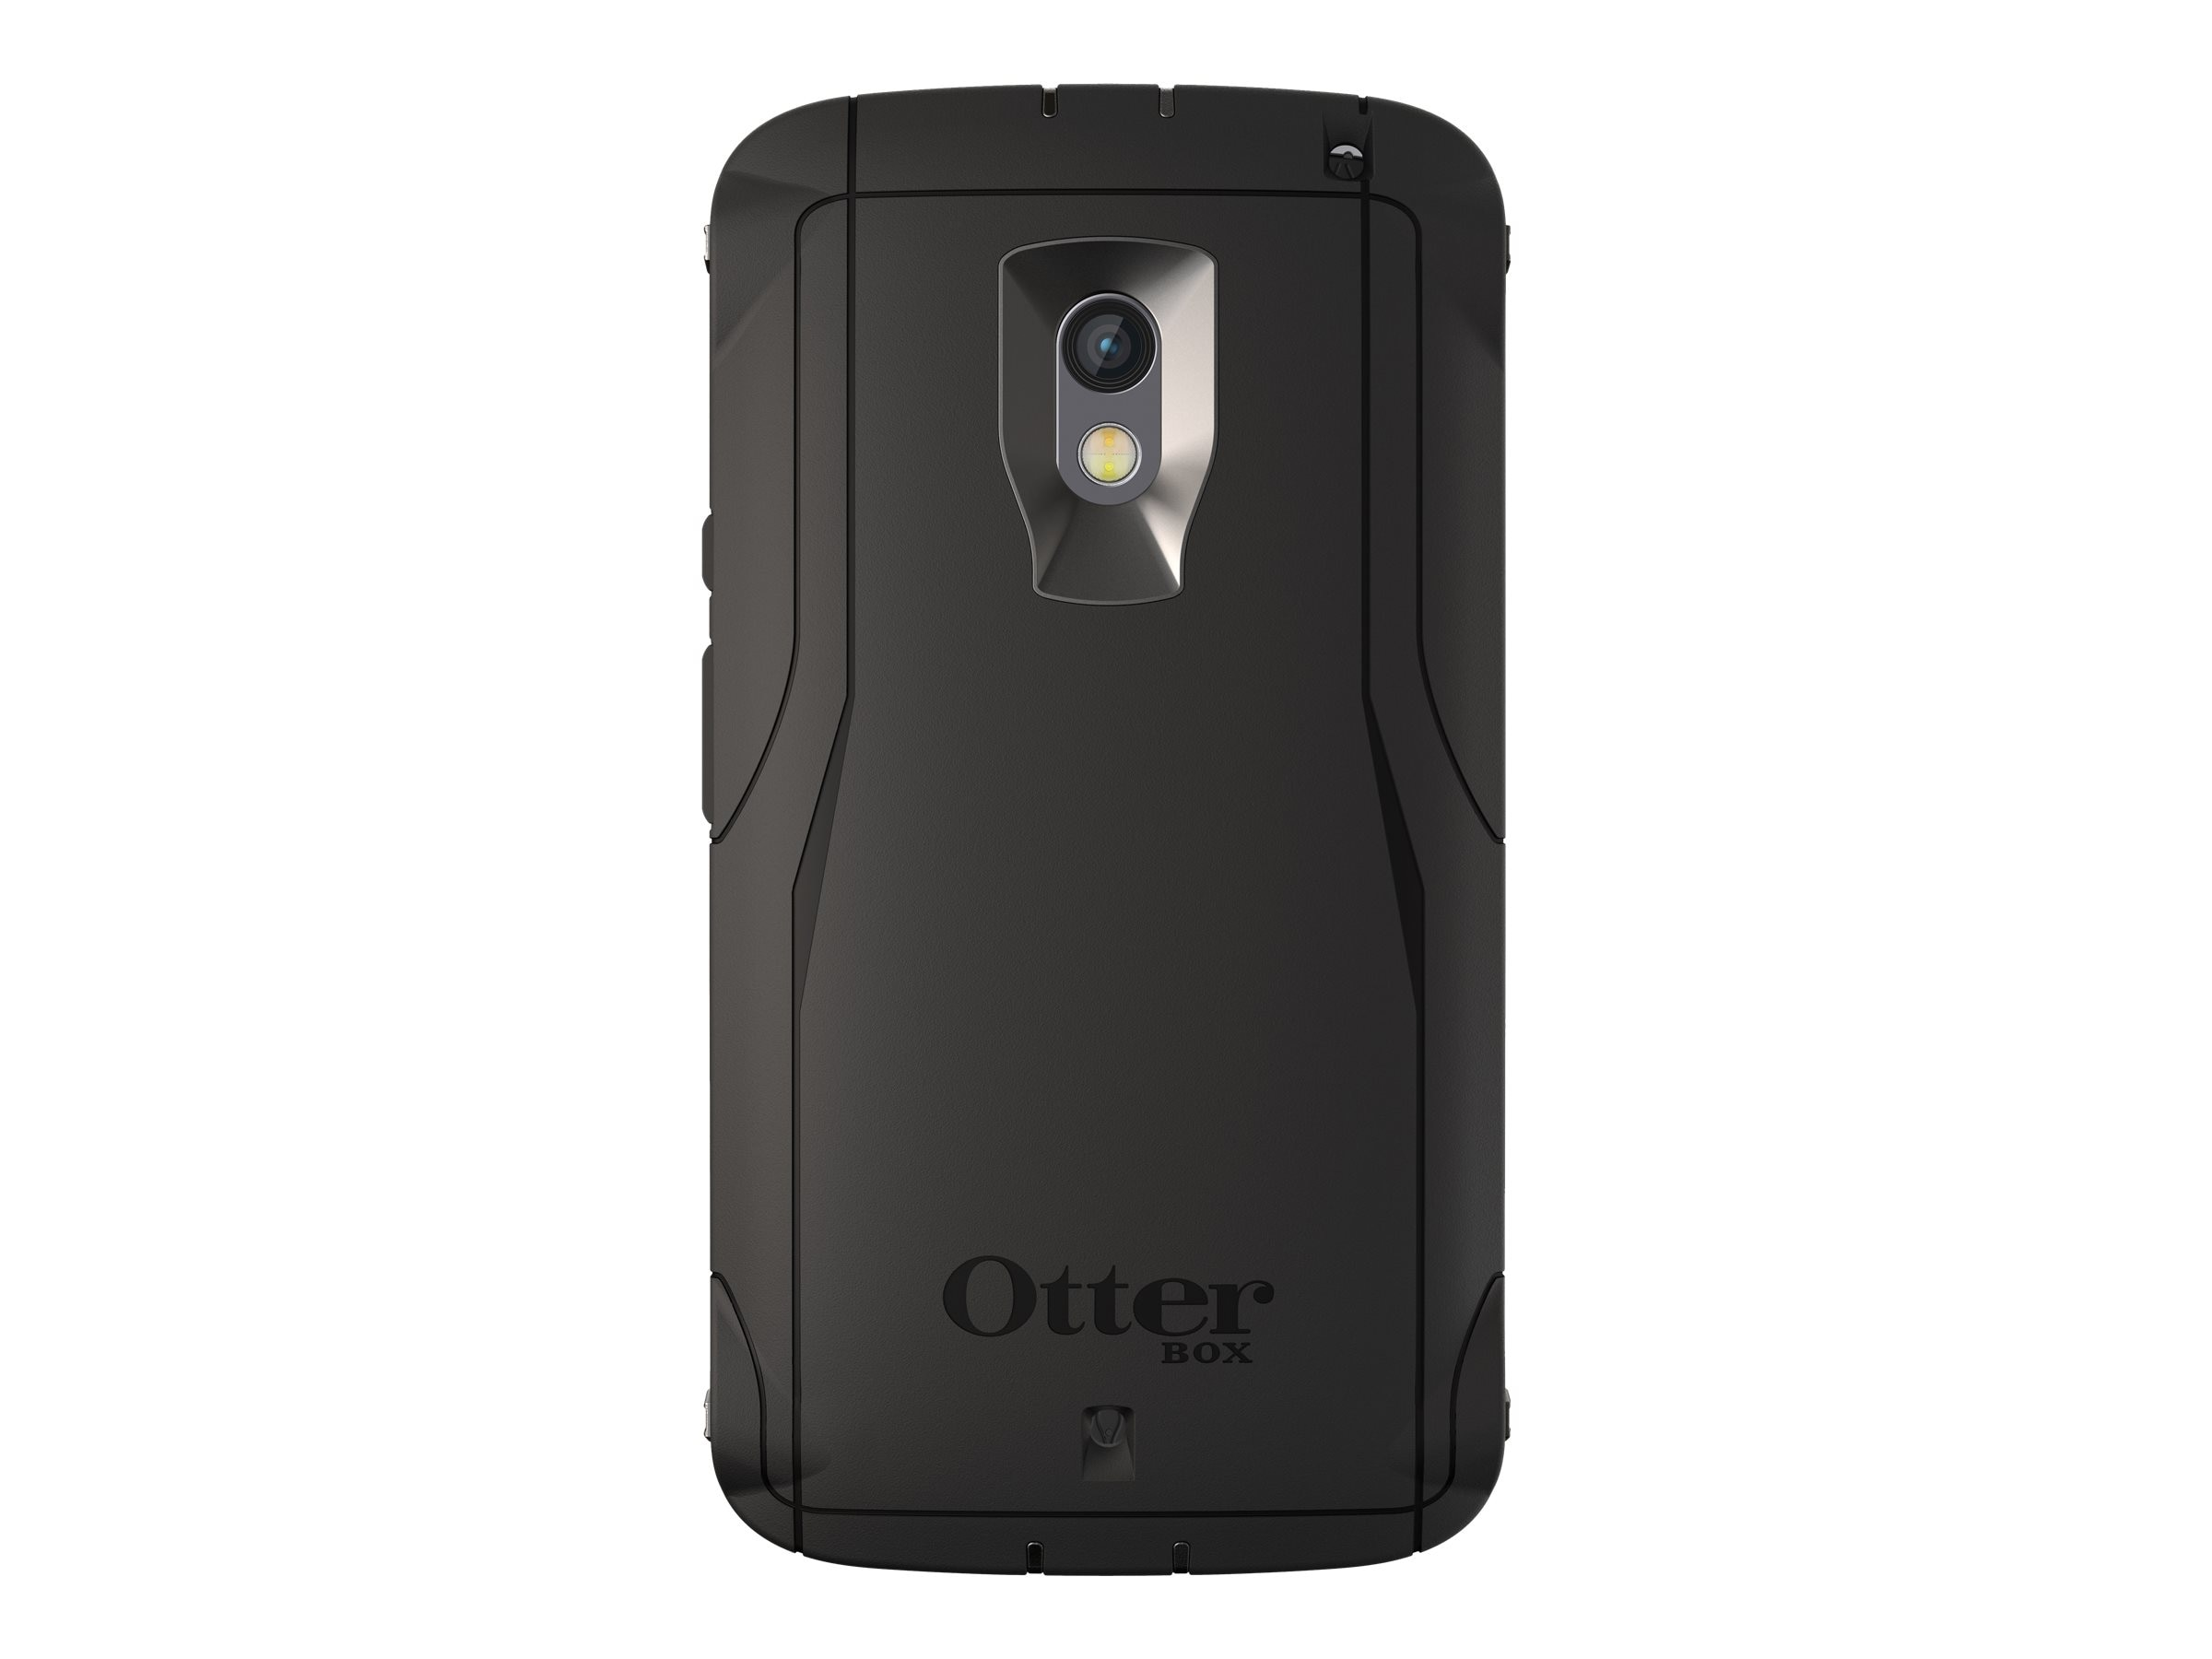 OtterBox Defender for Droid MAXX 2, Black